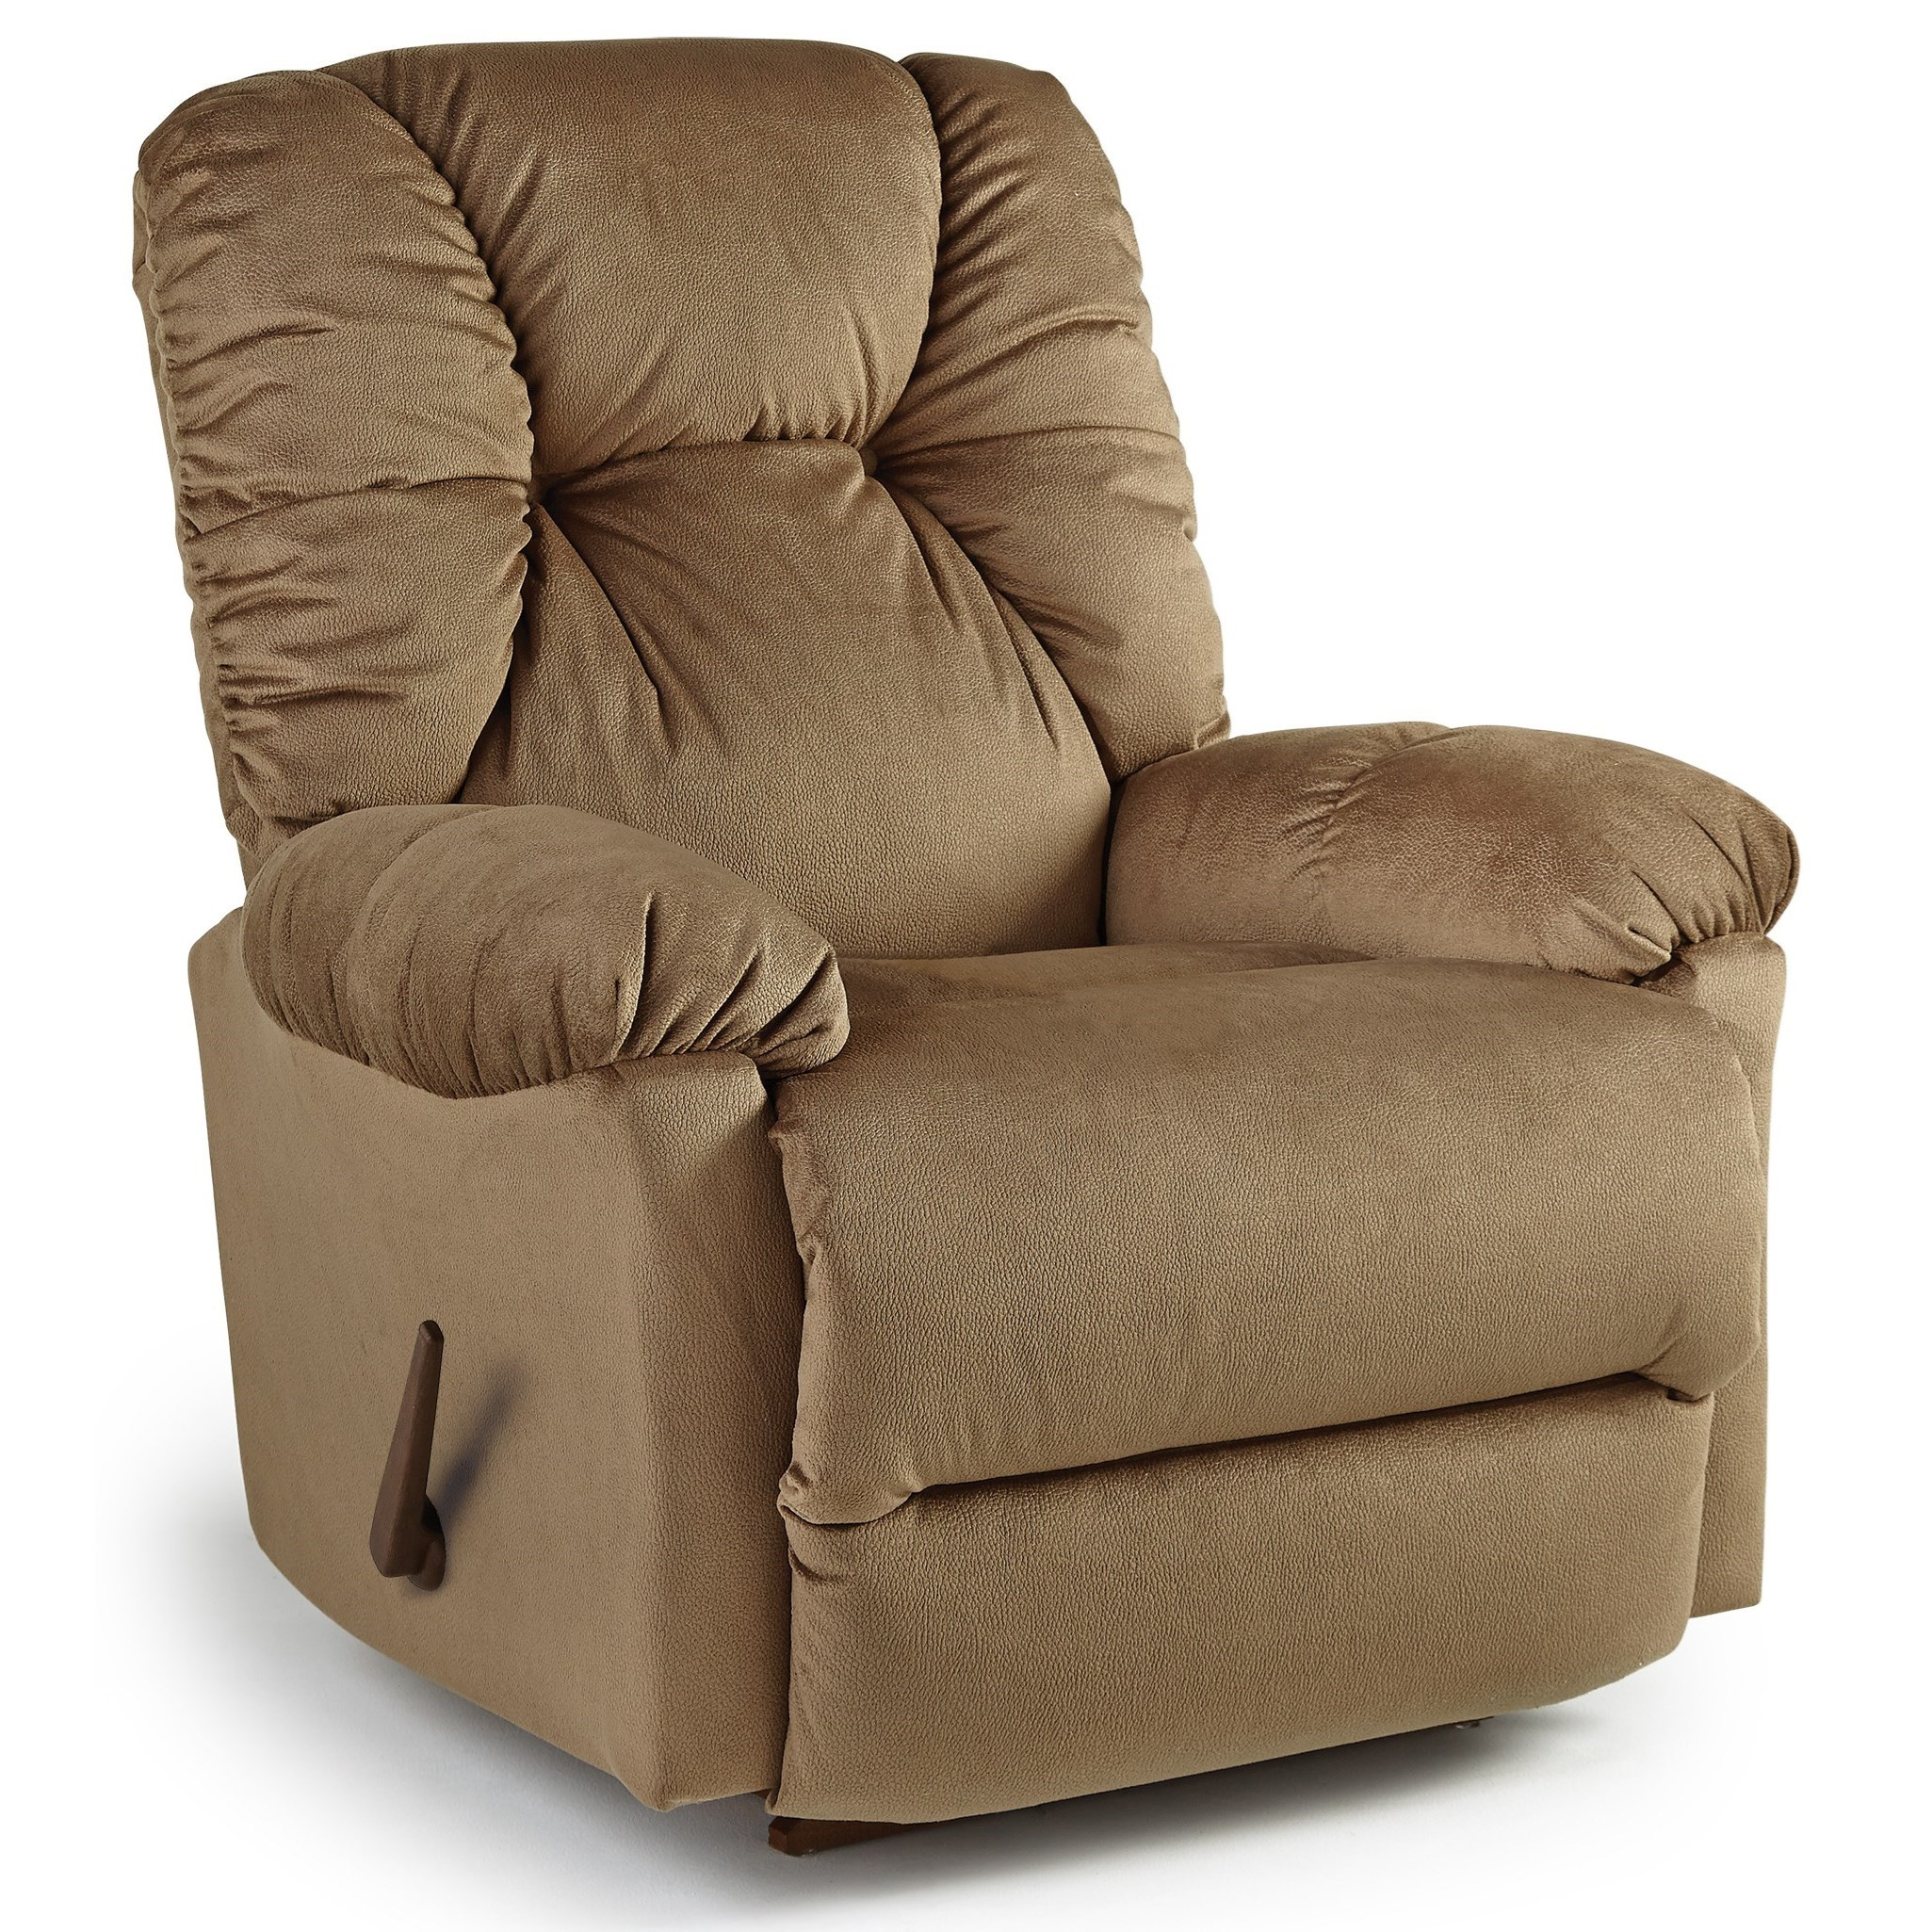 Swivel Rocking Reclining Chair By Best Home Furnishings